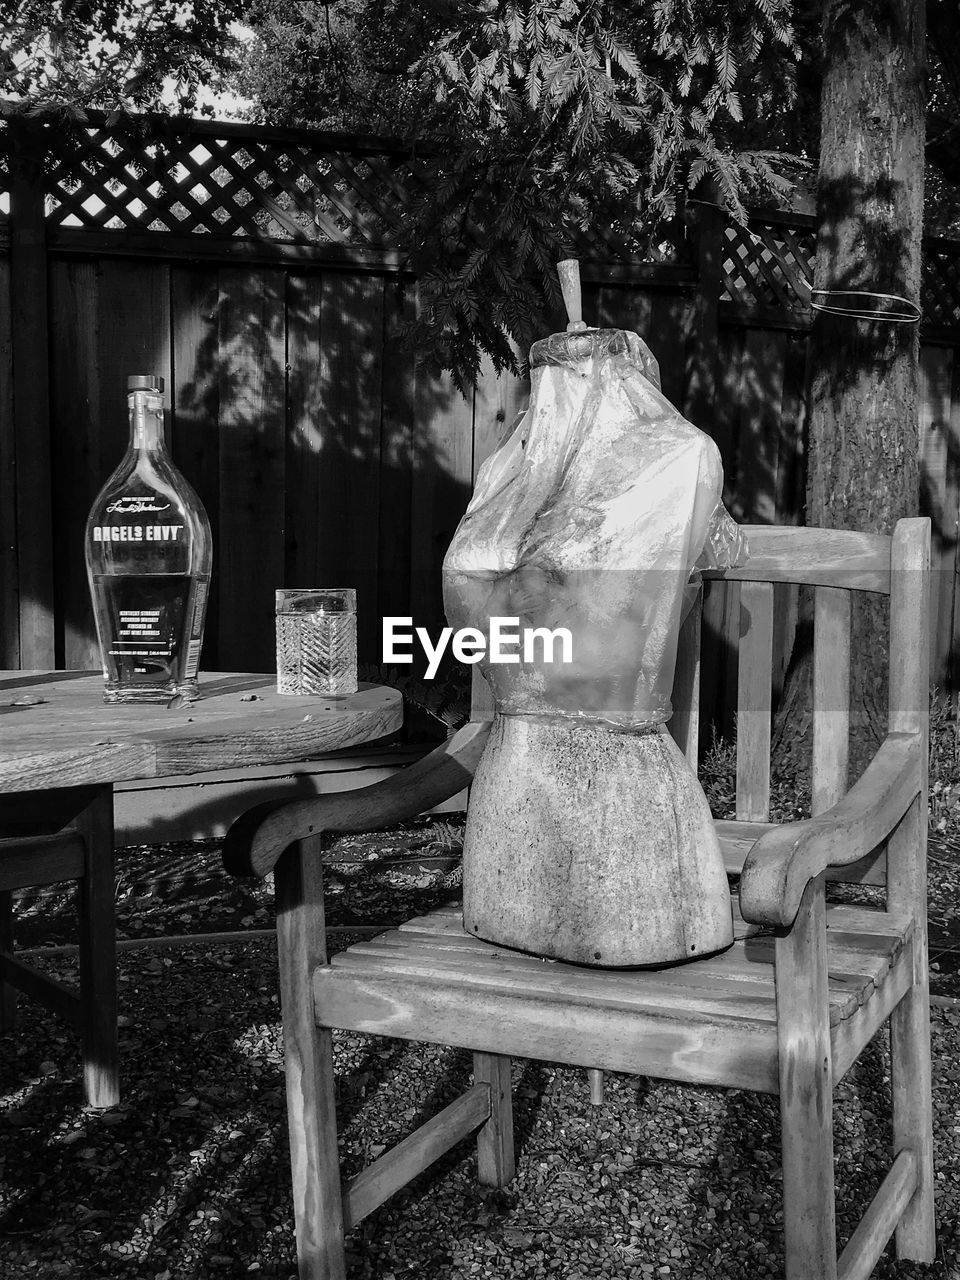 no people, tree, table, chair, seat, plant, day, front or back yard, nature, wood - material, bottle, food and drink, absence, park, still life, outdoors, human representation, container, park - man made space, focus on foreground, glass